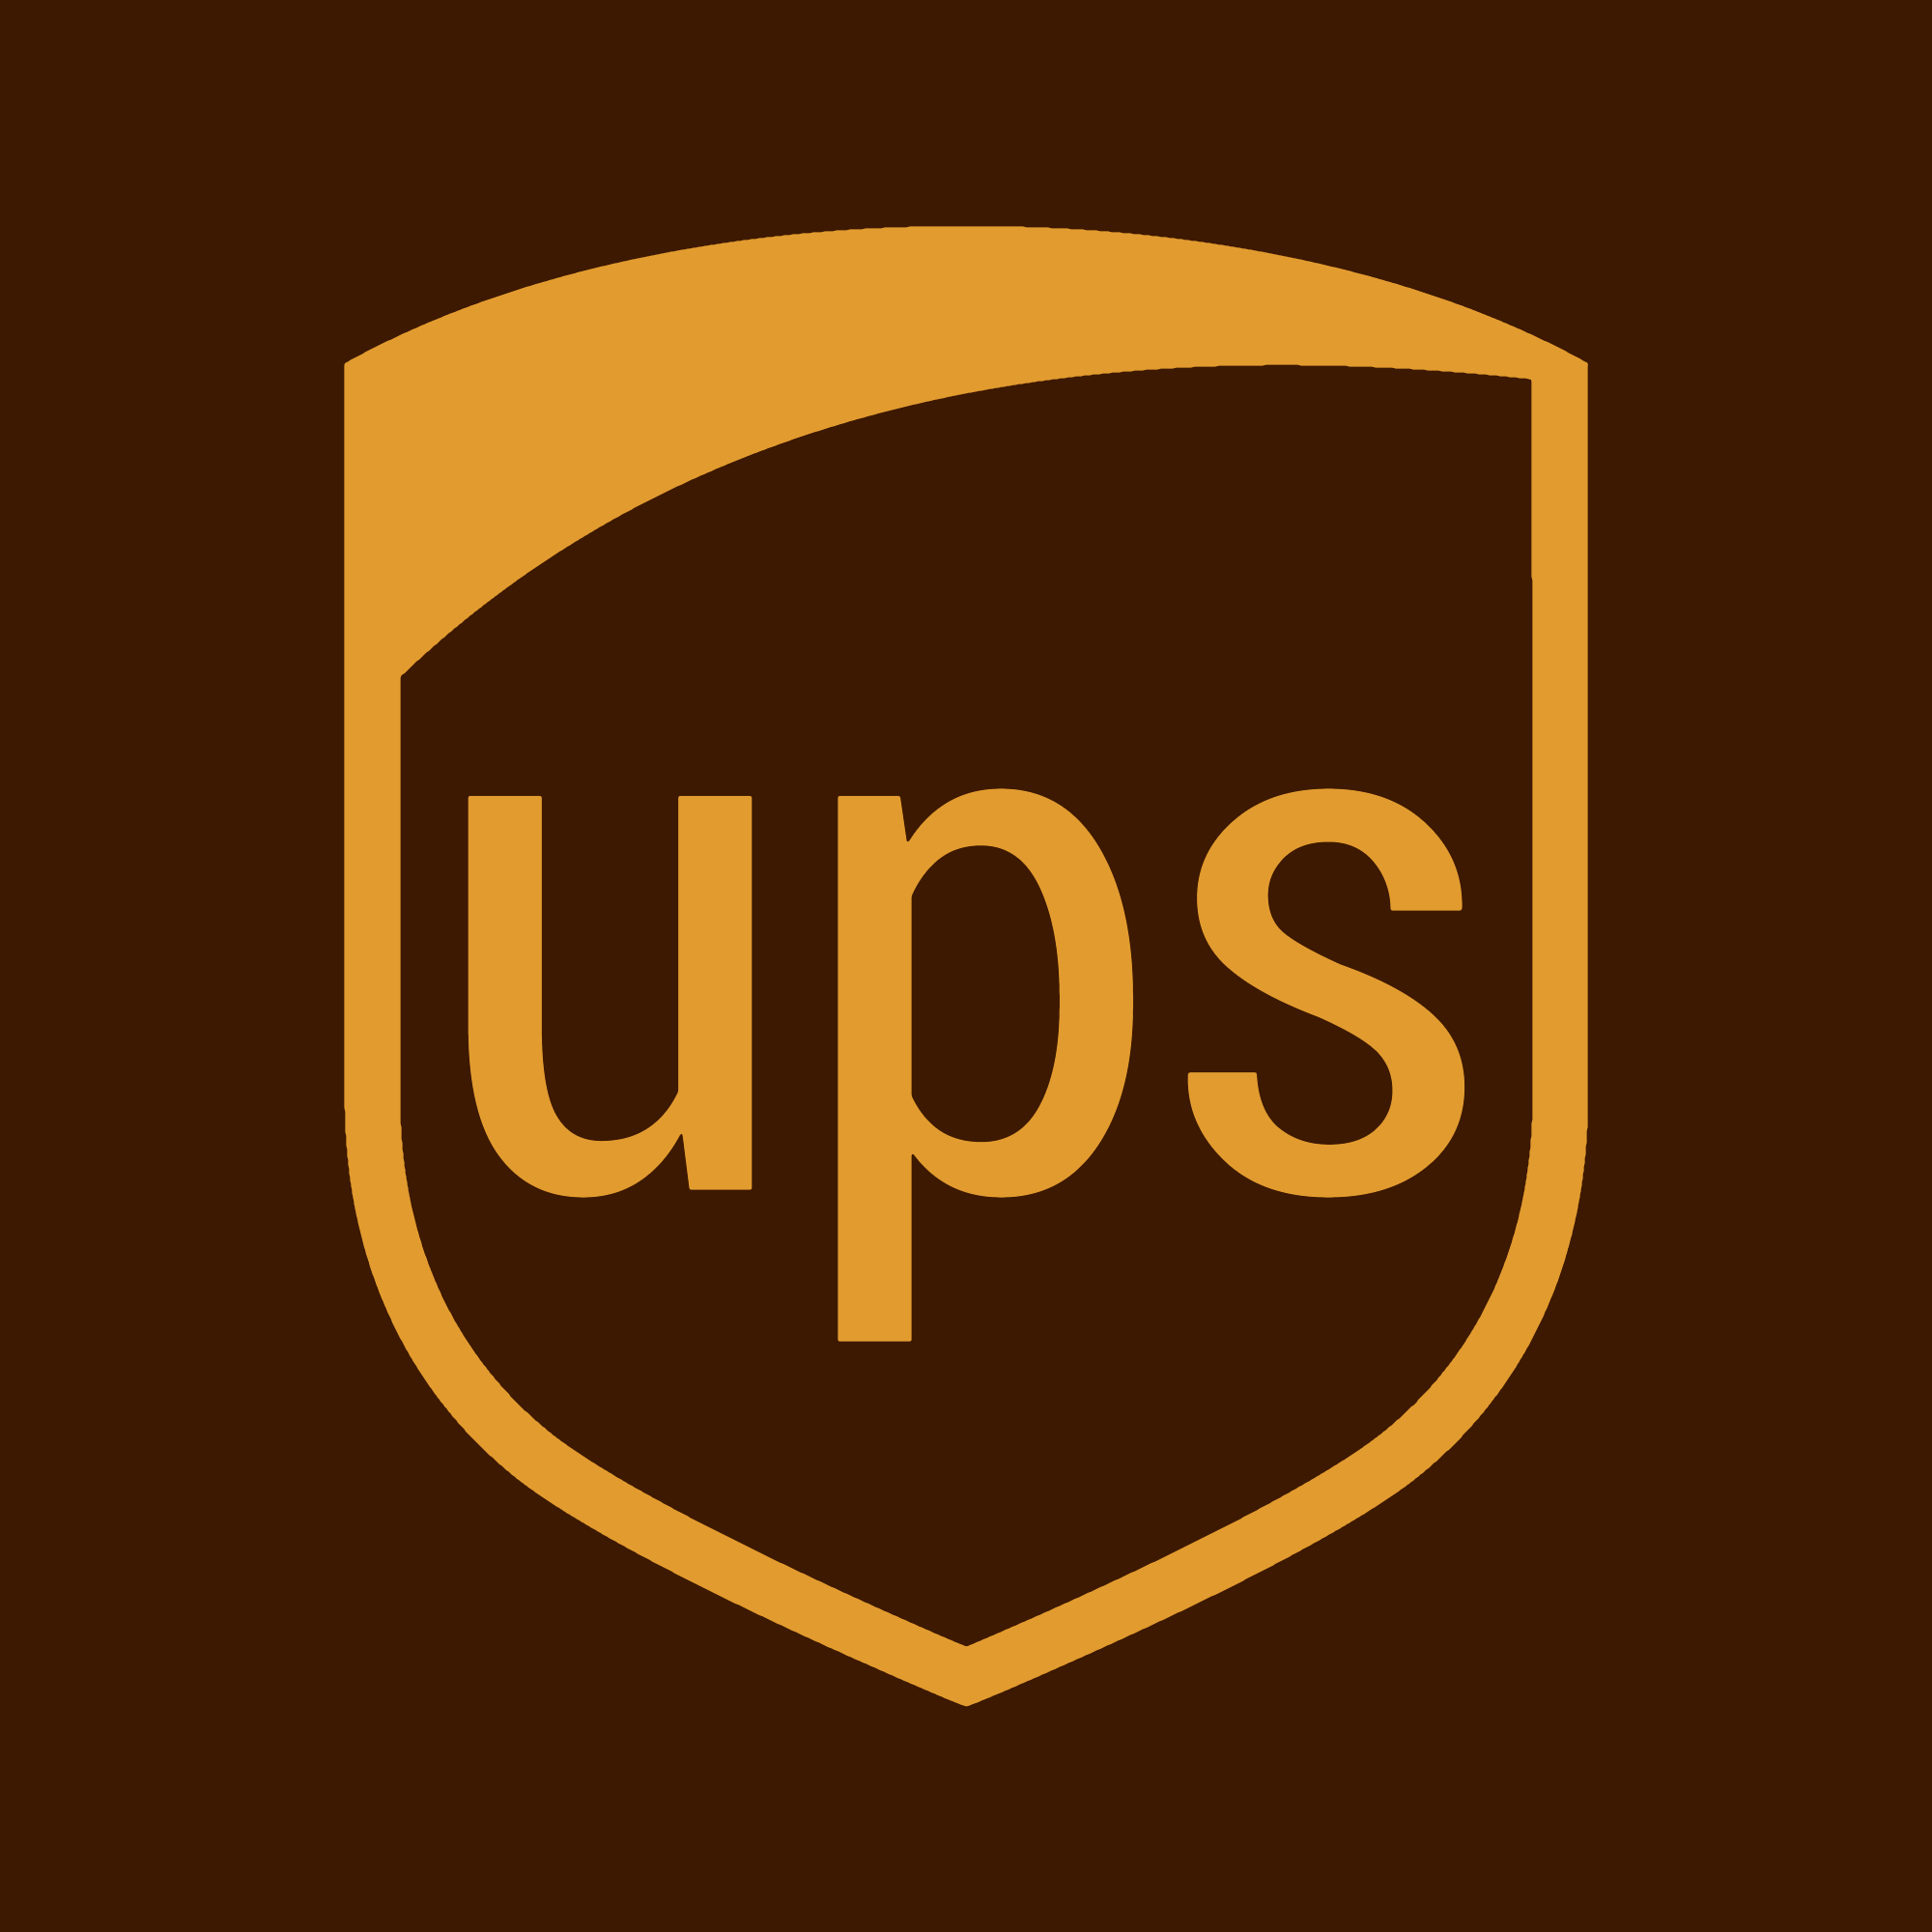 Ups Shipping From Waukesha Wi To West Valley City Utah